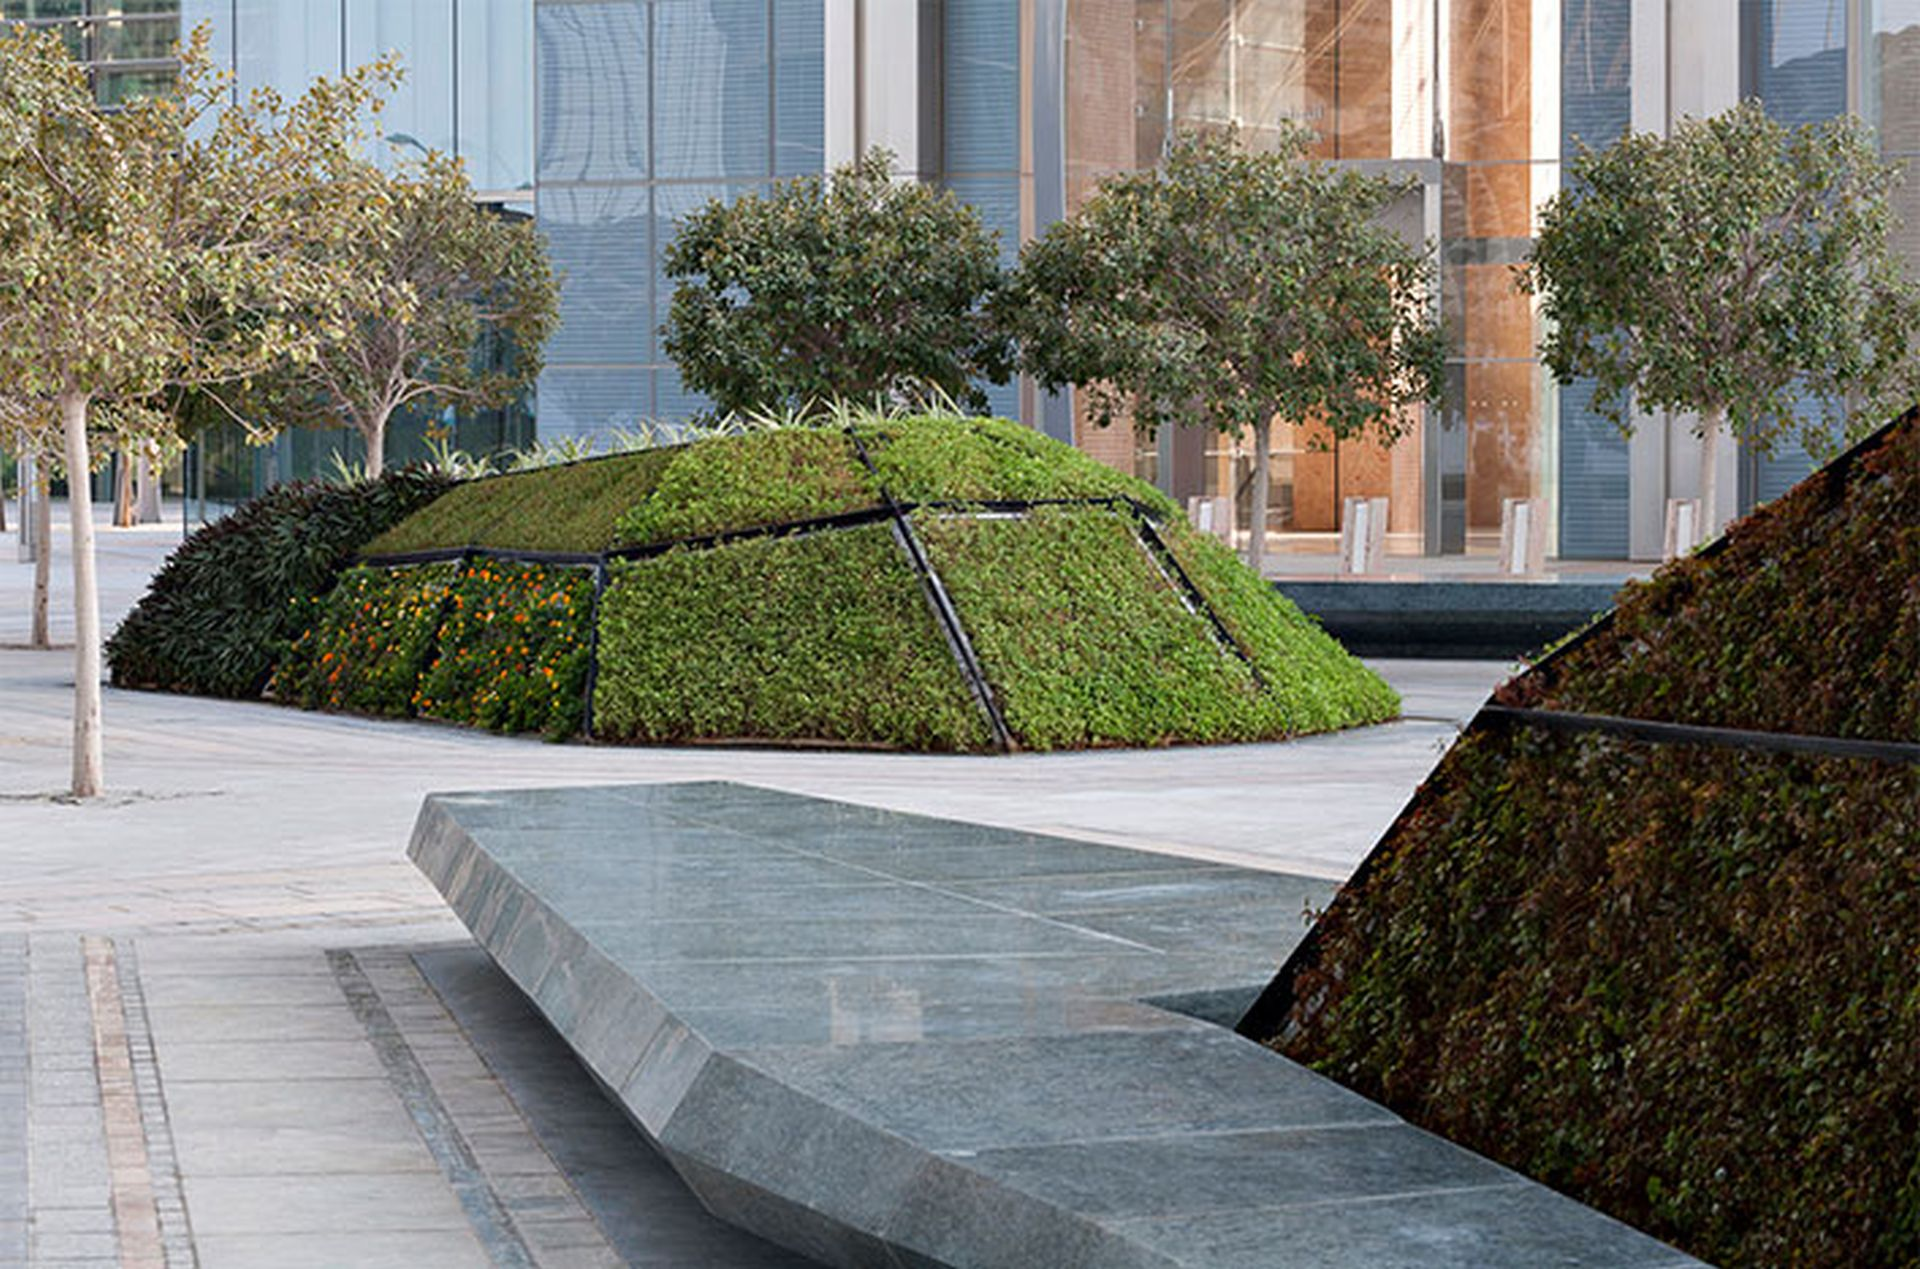 Places of high relief with different meadow by squares designed by one of the Best landscapers